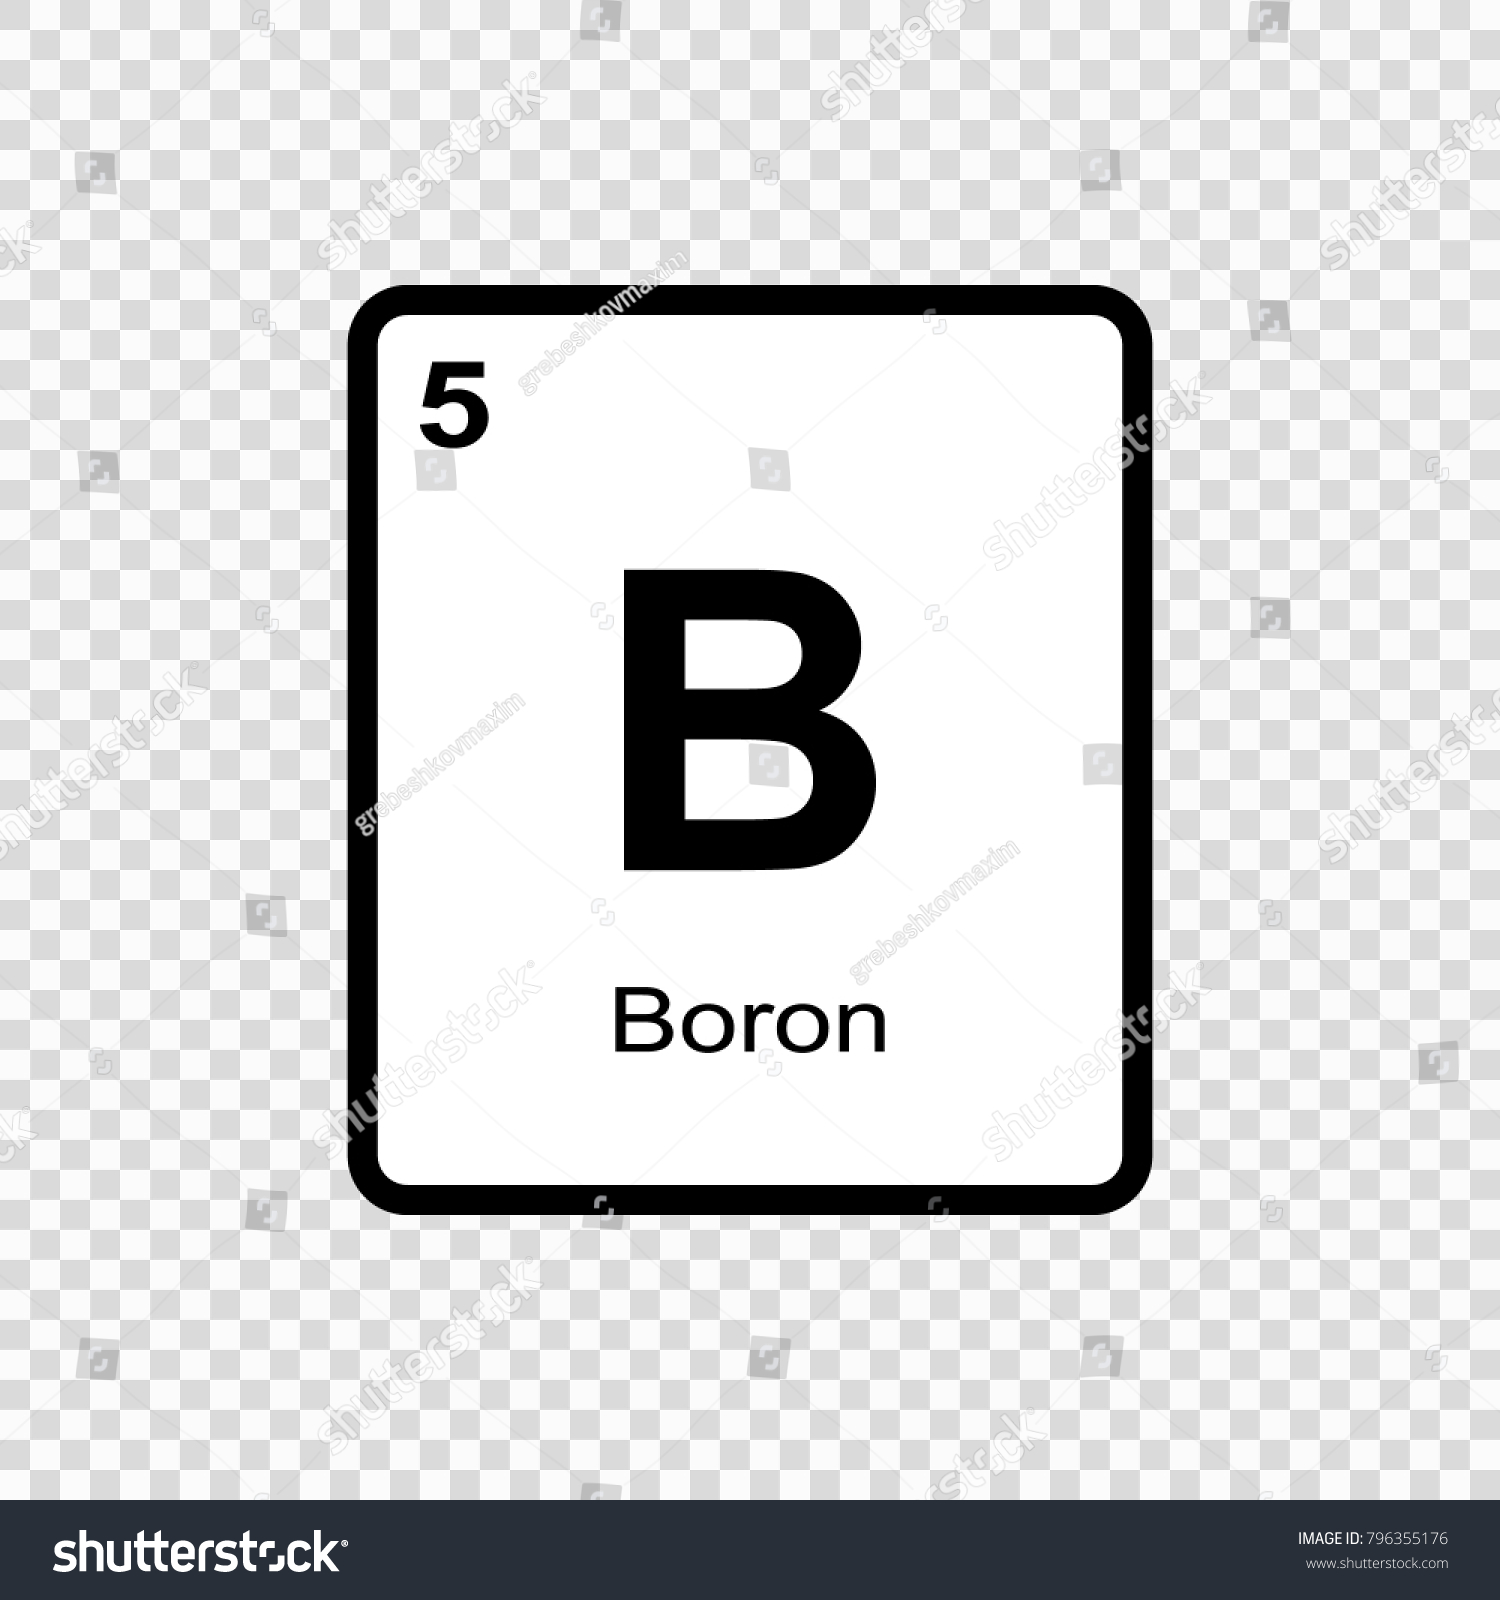 The symbol of boron images symbol and sign ideas boron chemical element sign atomic number stock vector 796355176 boron chemical element sign with atomic number buycottarizona